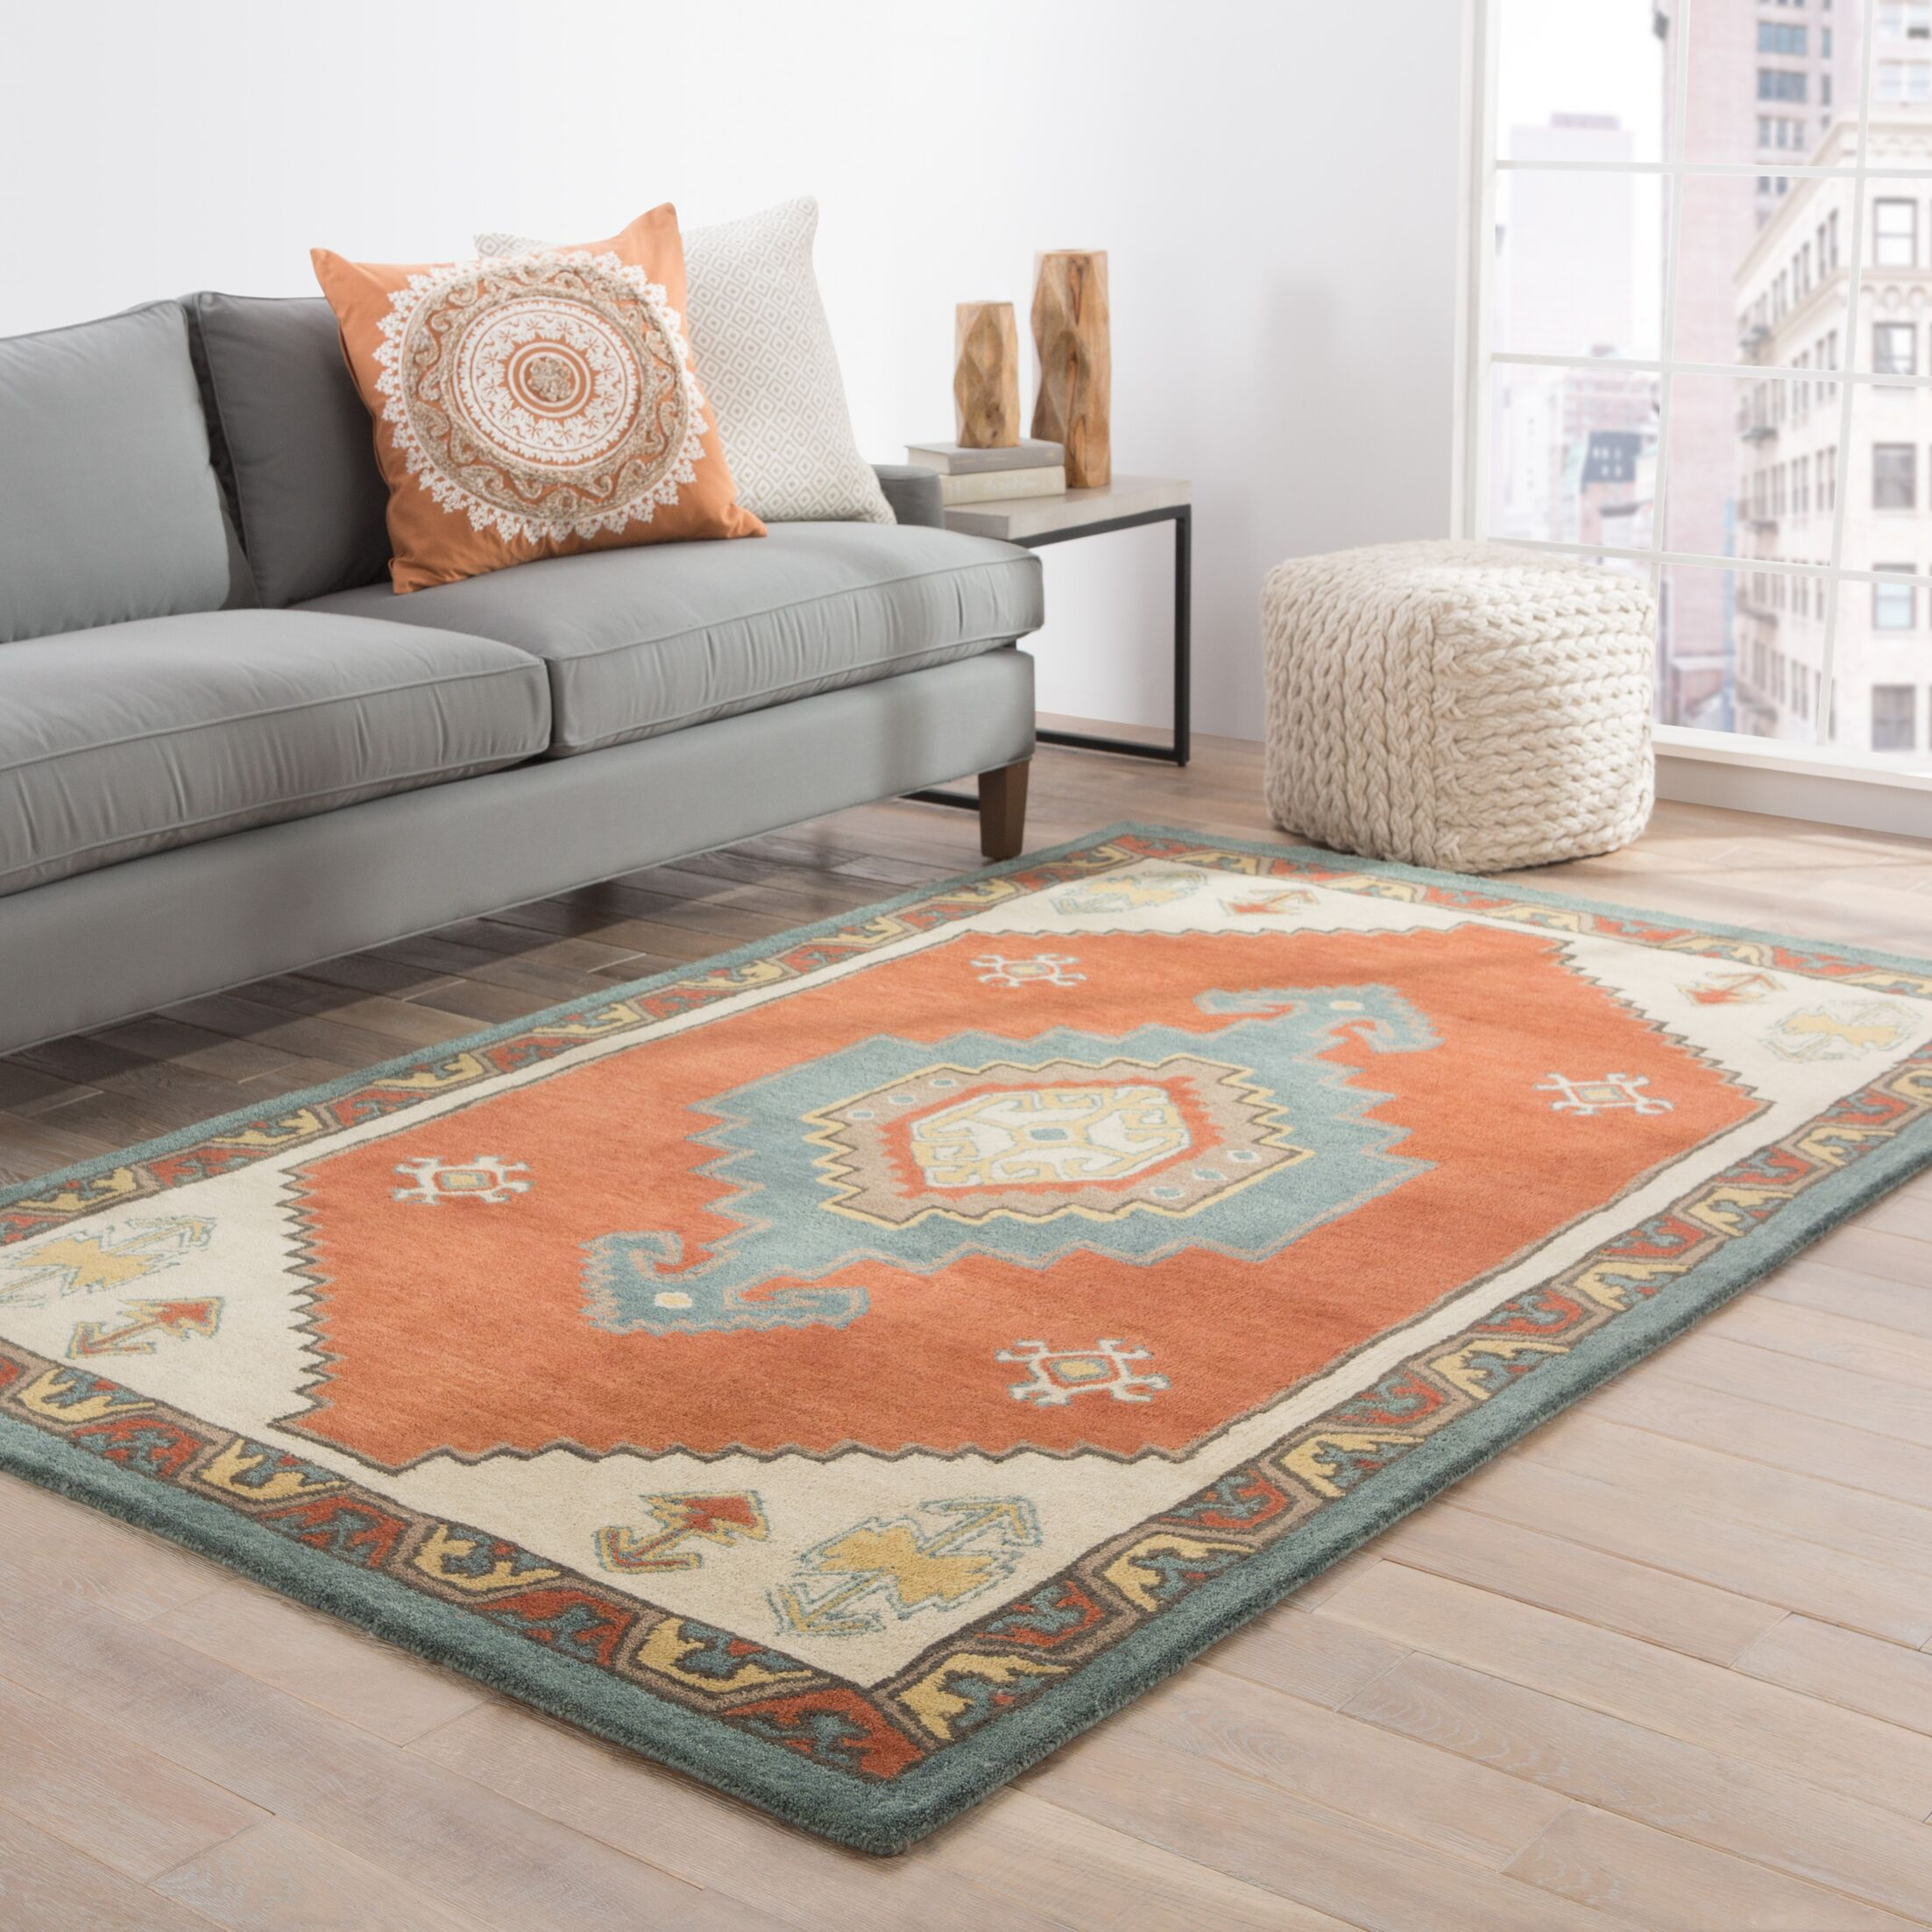 Kimmie Hand-Tufted Red/Blue Area Rug Rug Size: Rectangle 5' x 8'